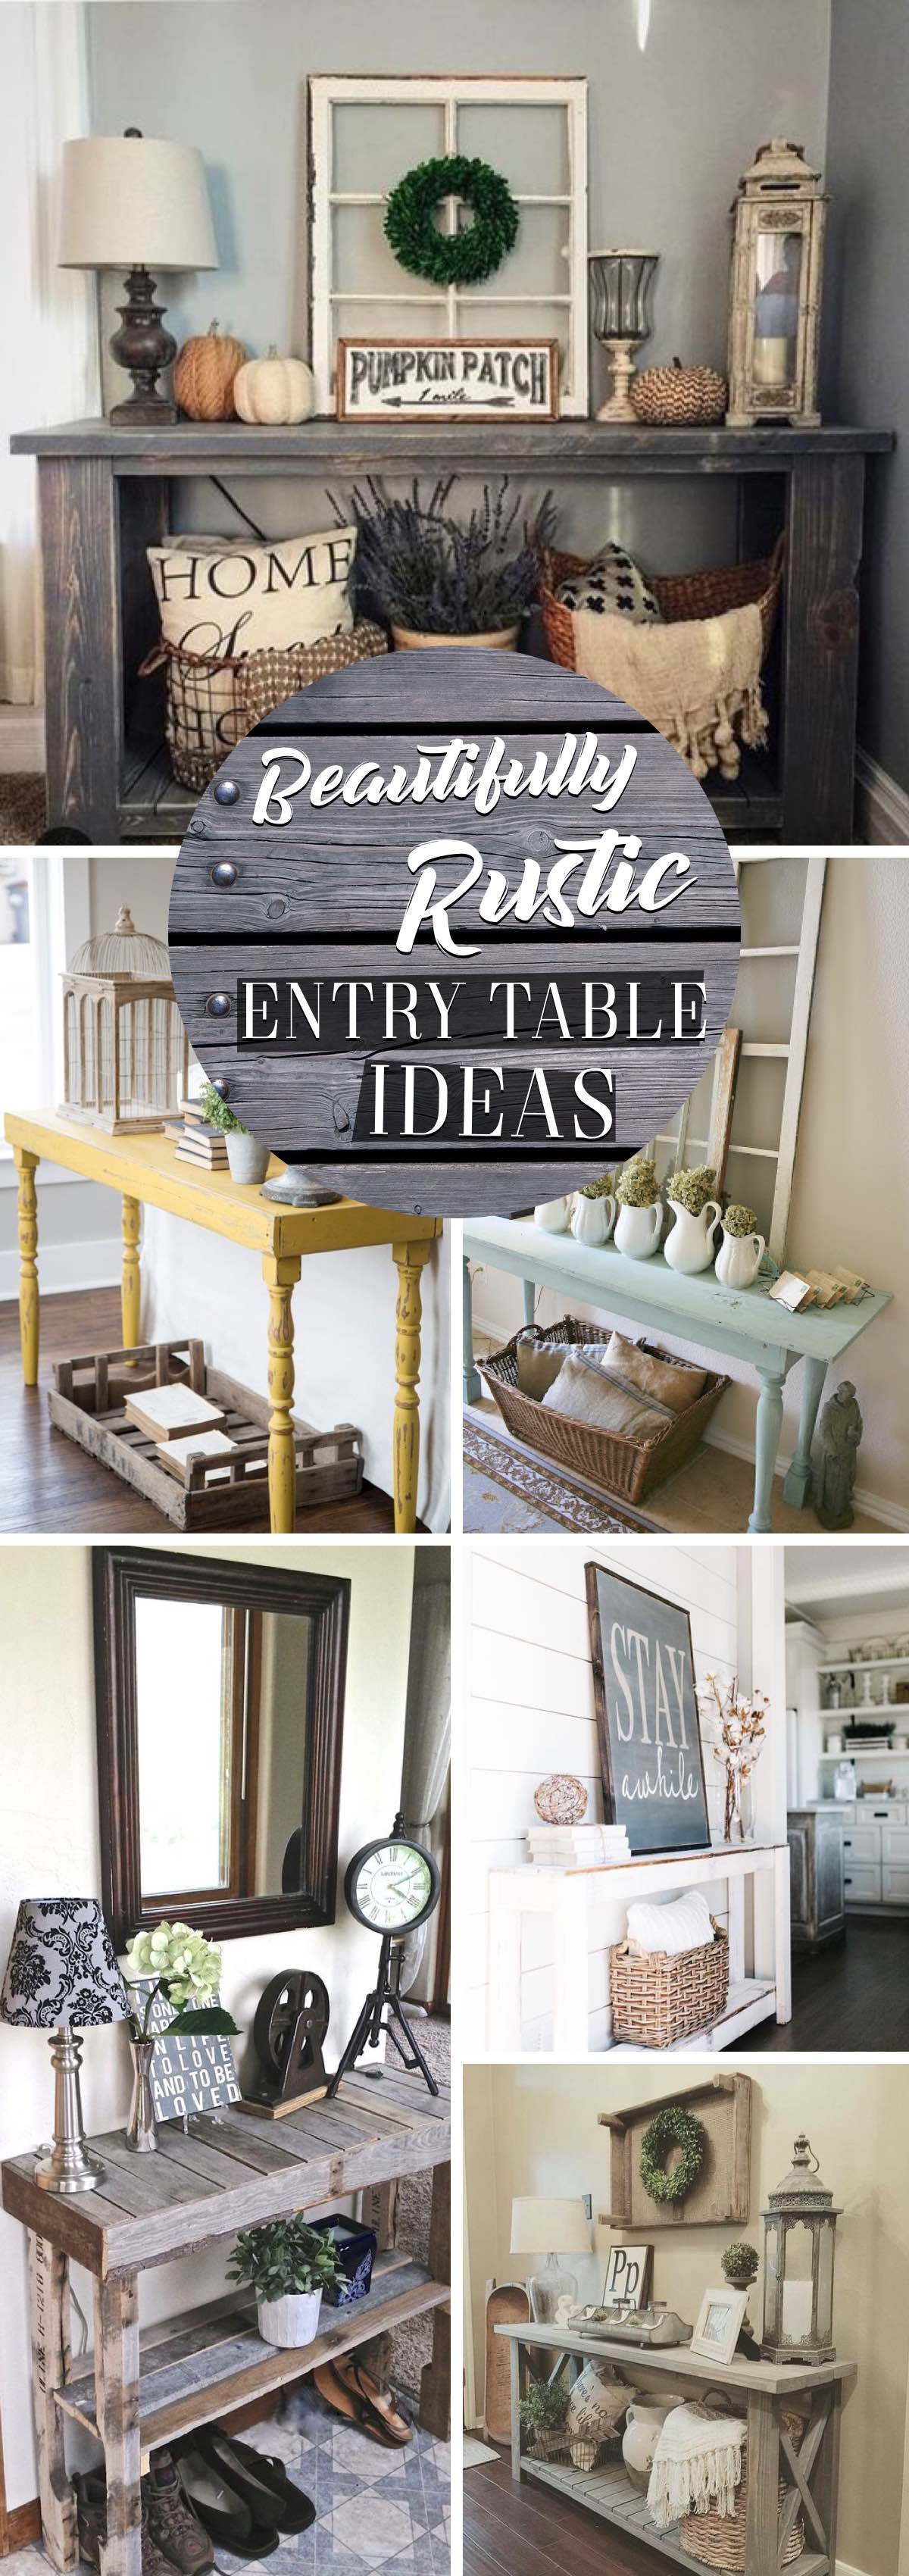 Beautifully Rustic Entry Table Ideas